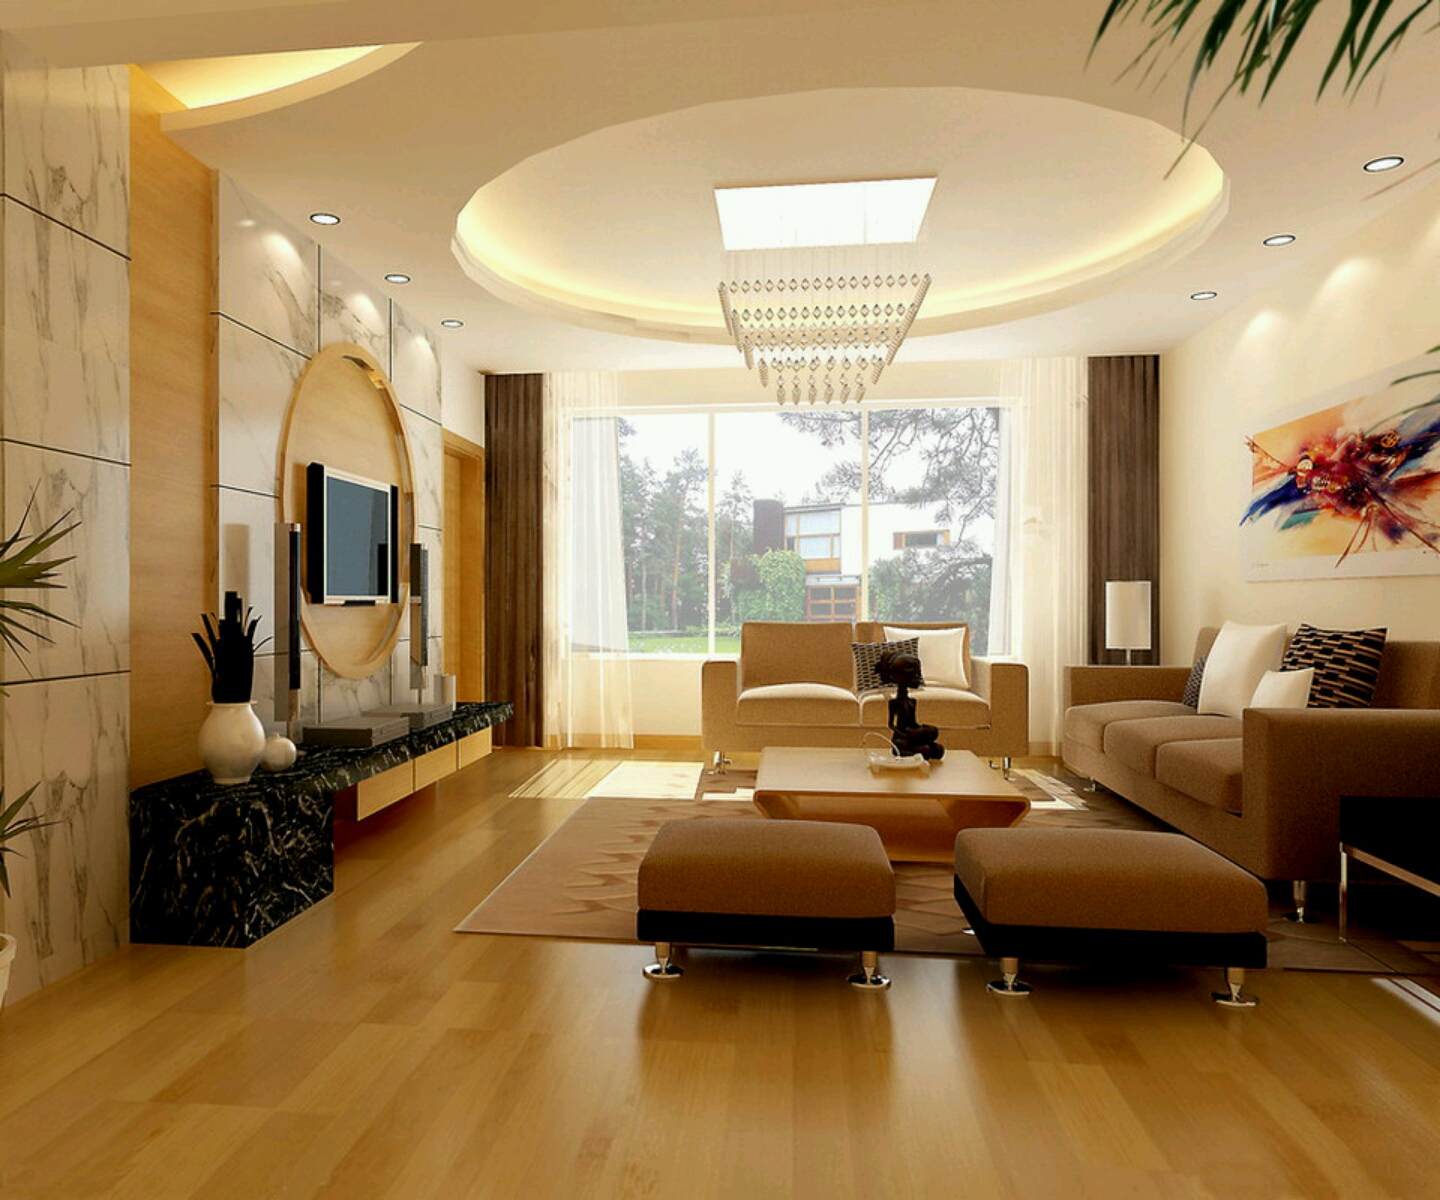 Modern interior decoration living rooms ceiling designs for Design home living room